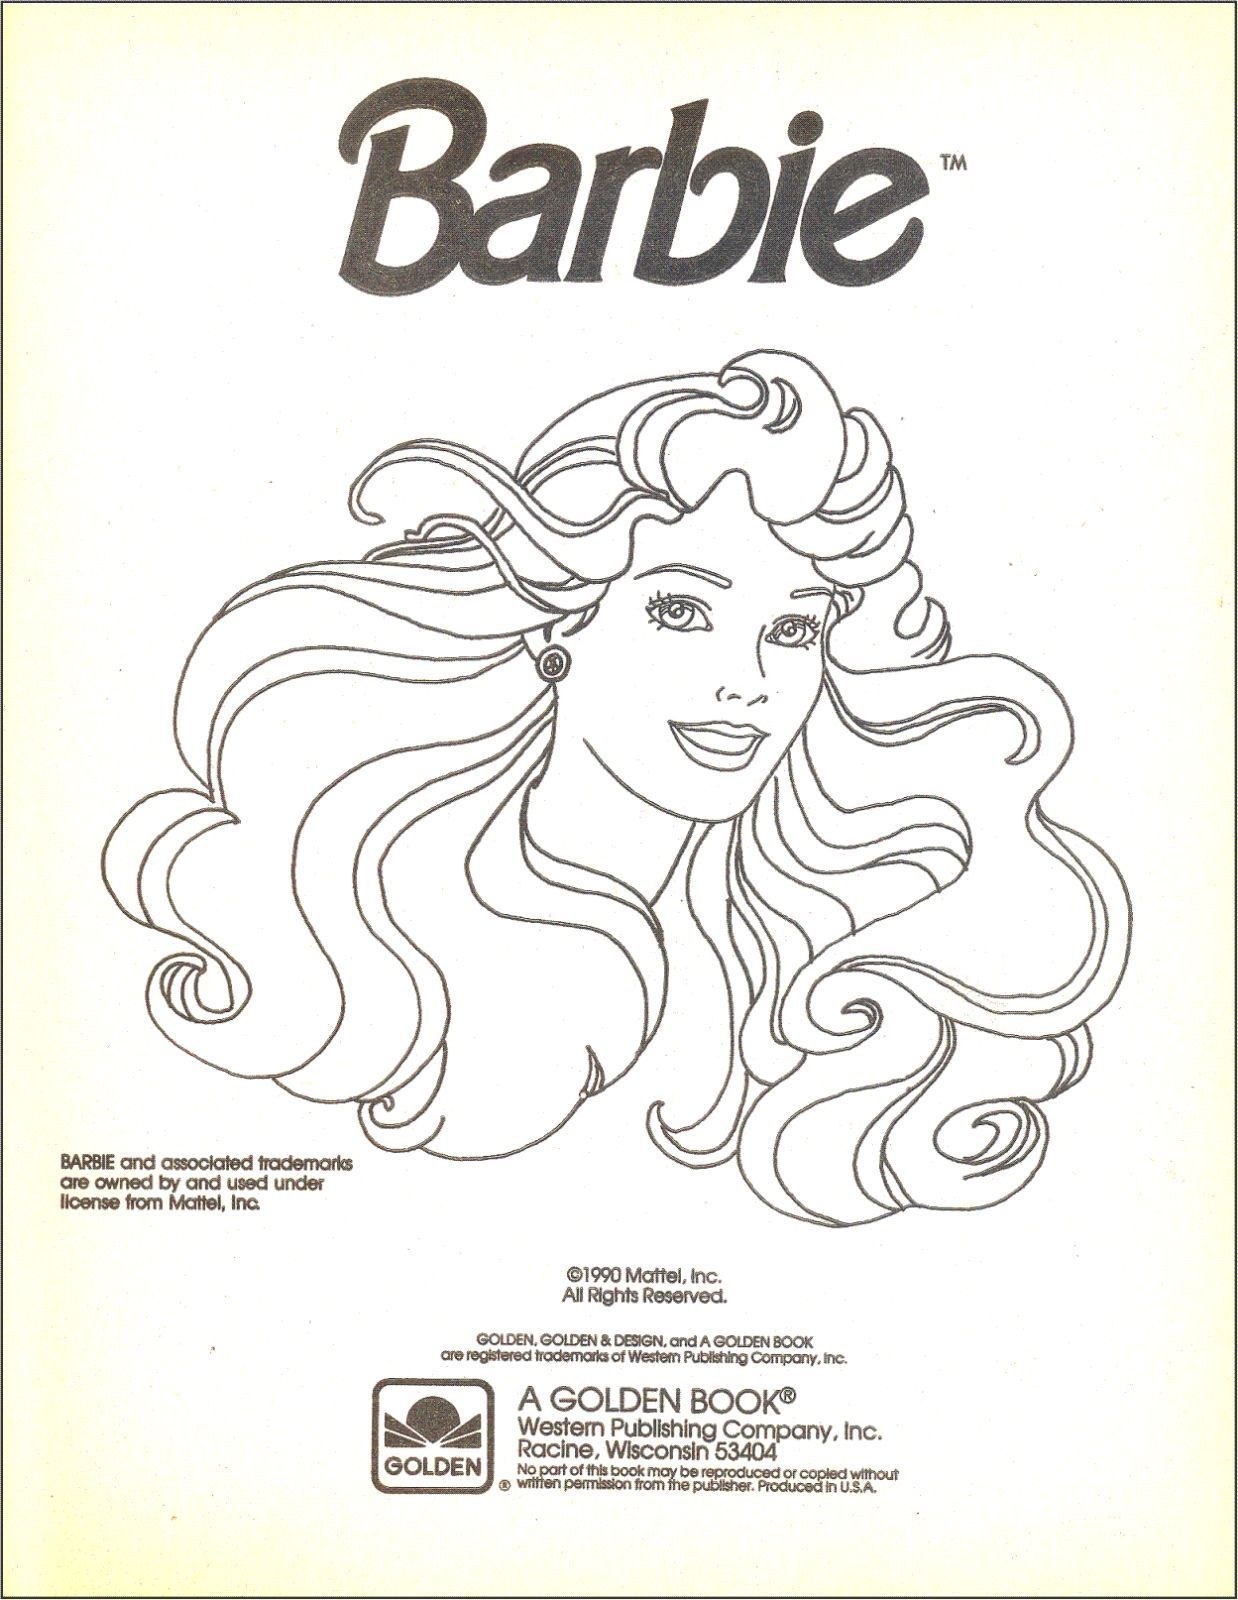 barbie coloring books for sale # 3